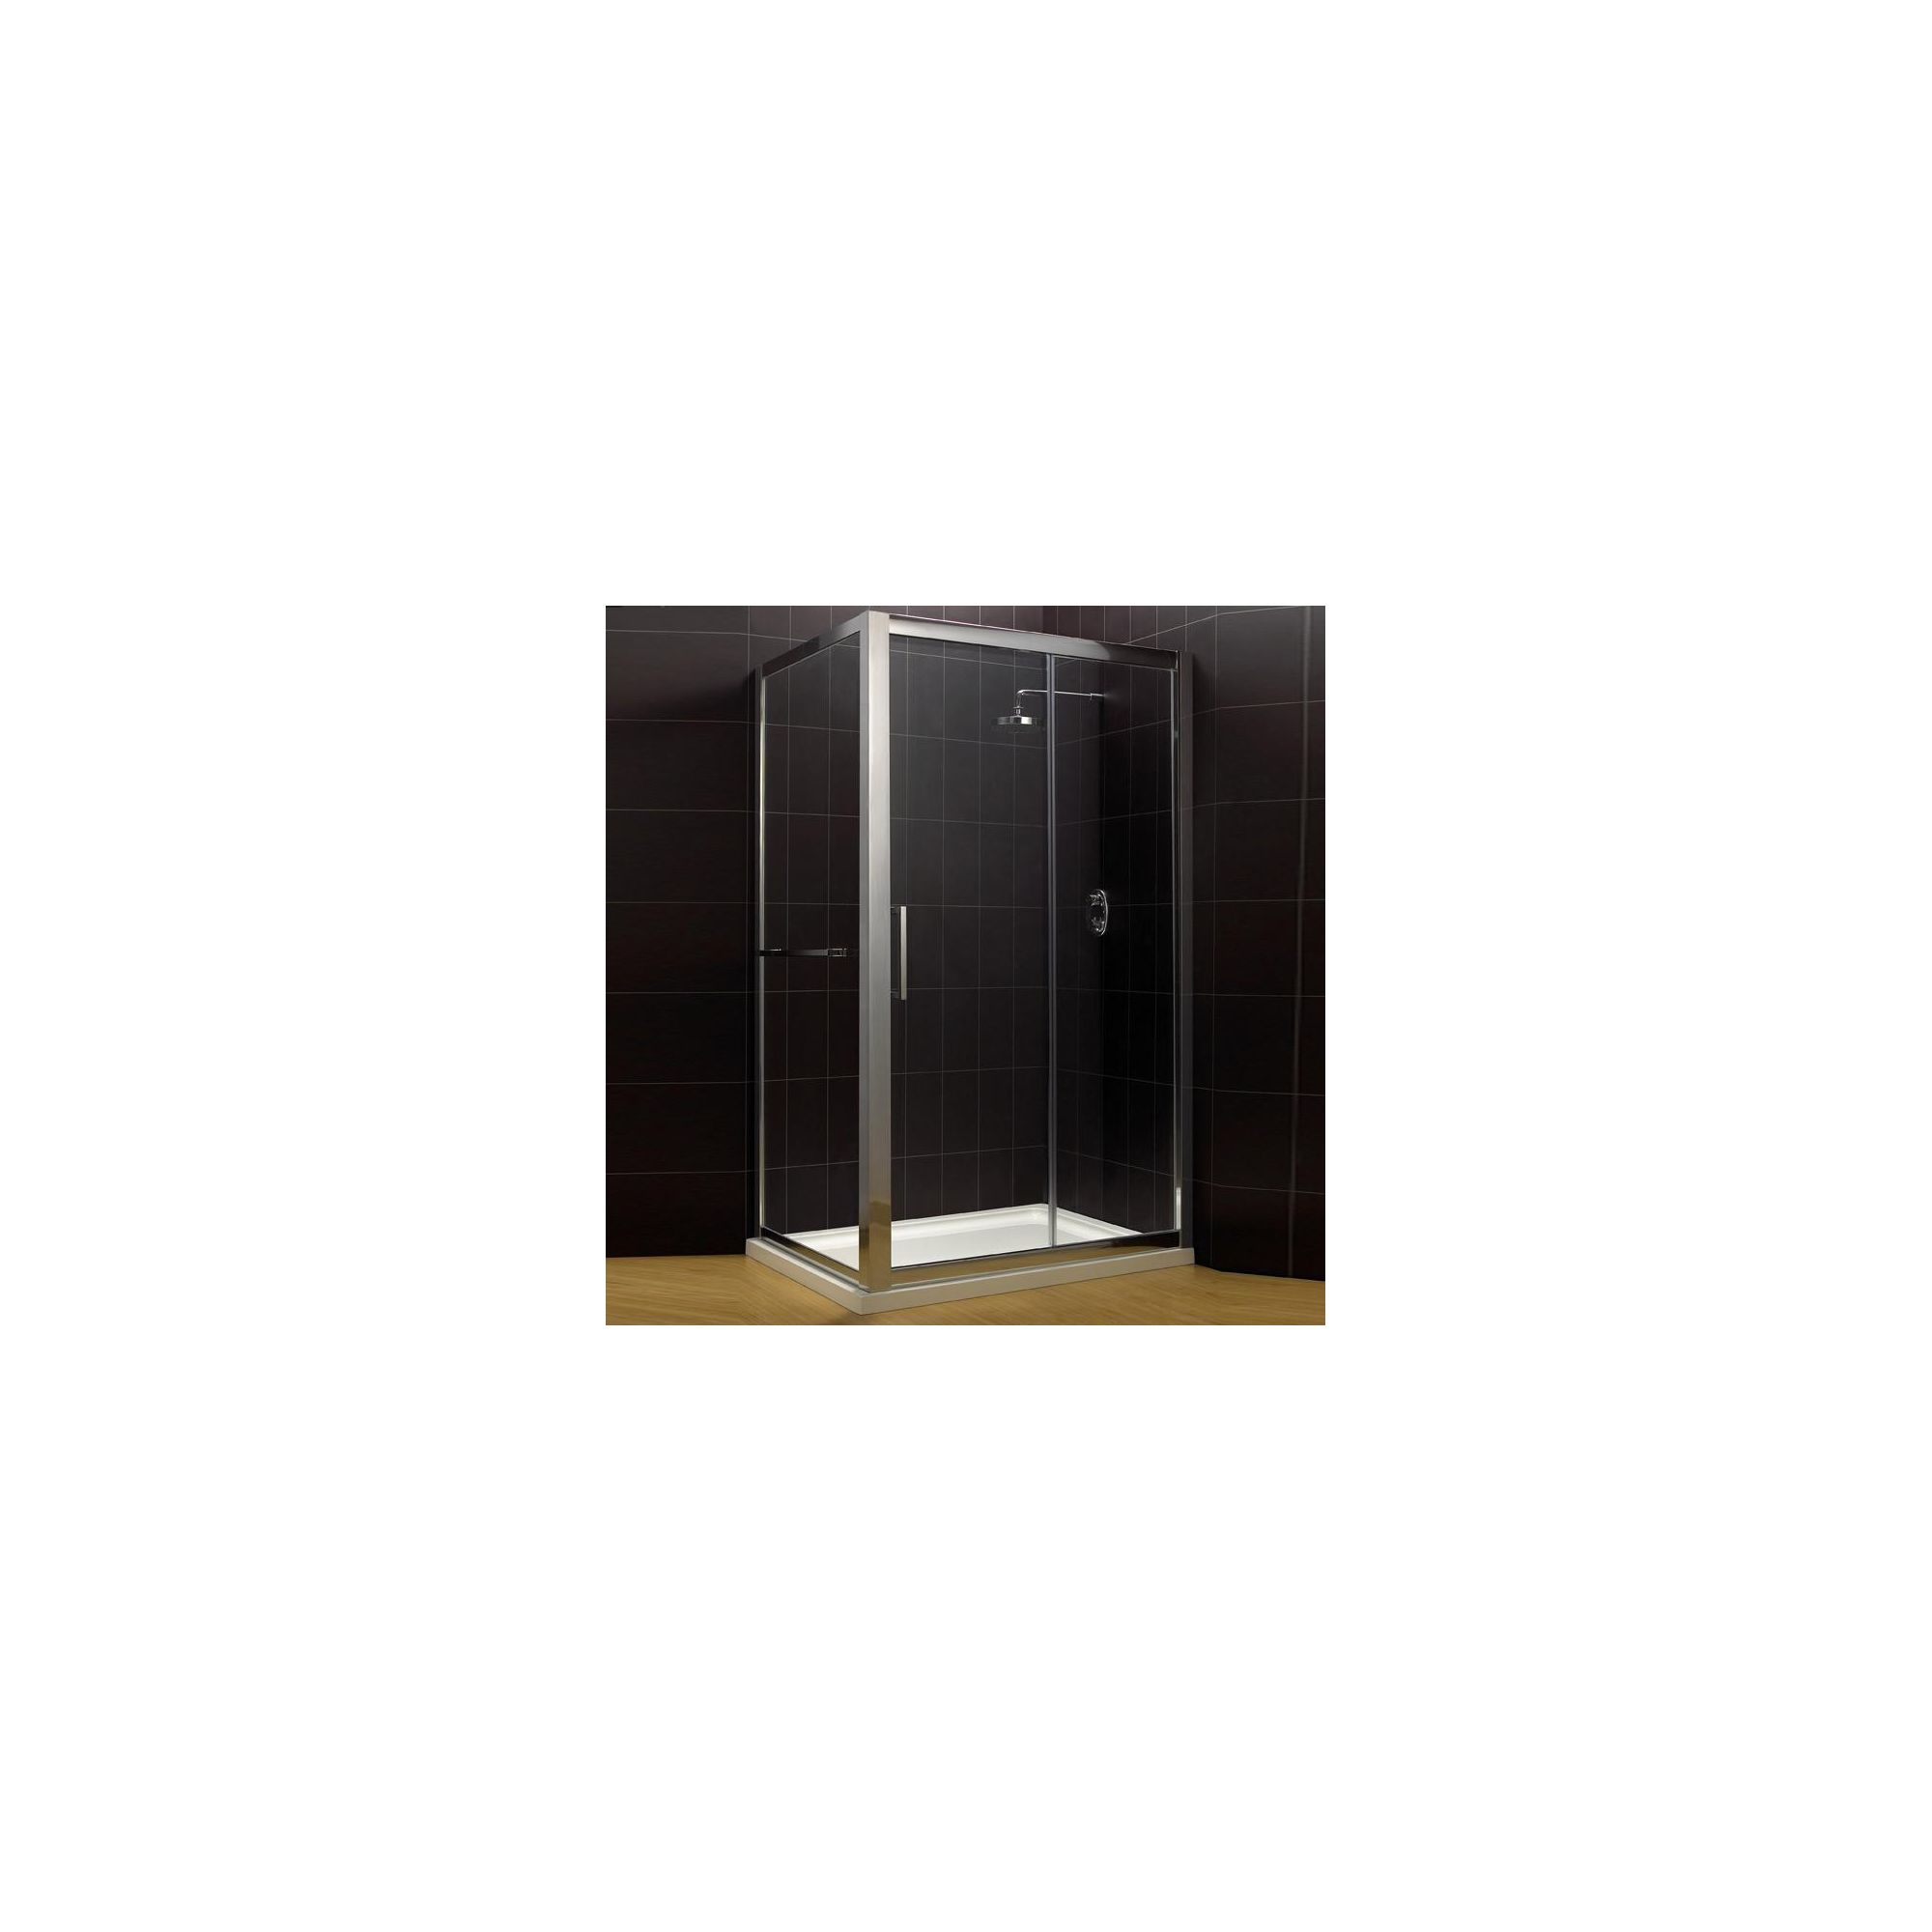 Duchy Supreme Silver Sliding Door Shower Enclosure, 1600mm x 700mm, Standard Tray, 8mm Glass at Tesco Direct